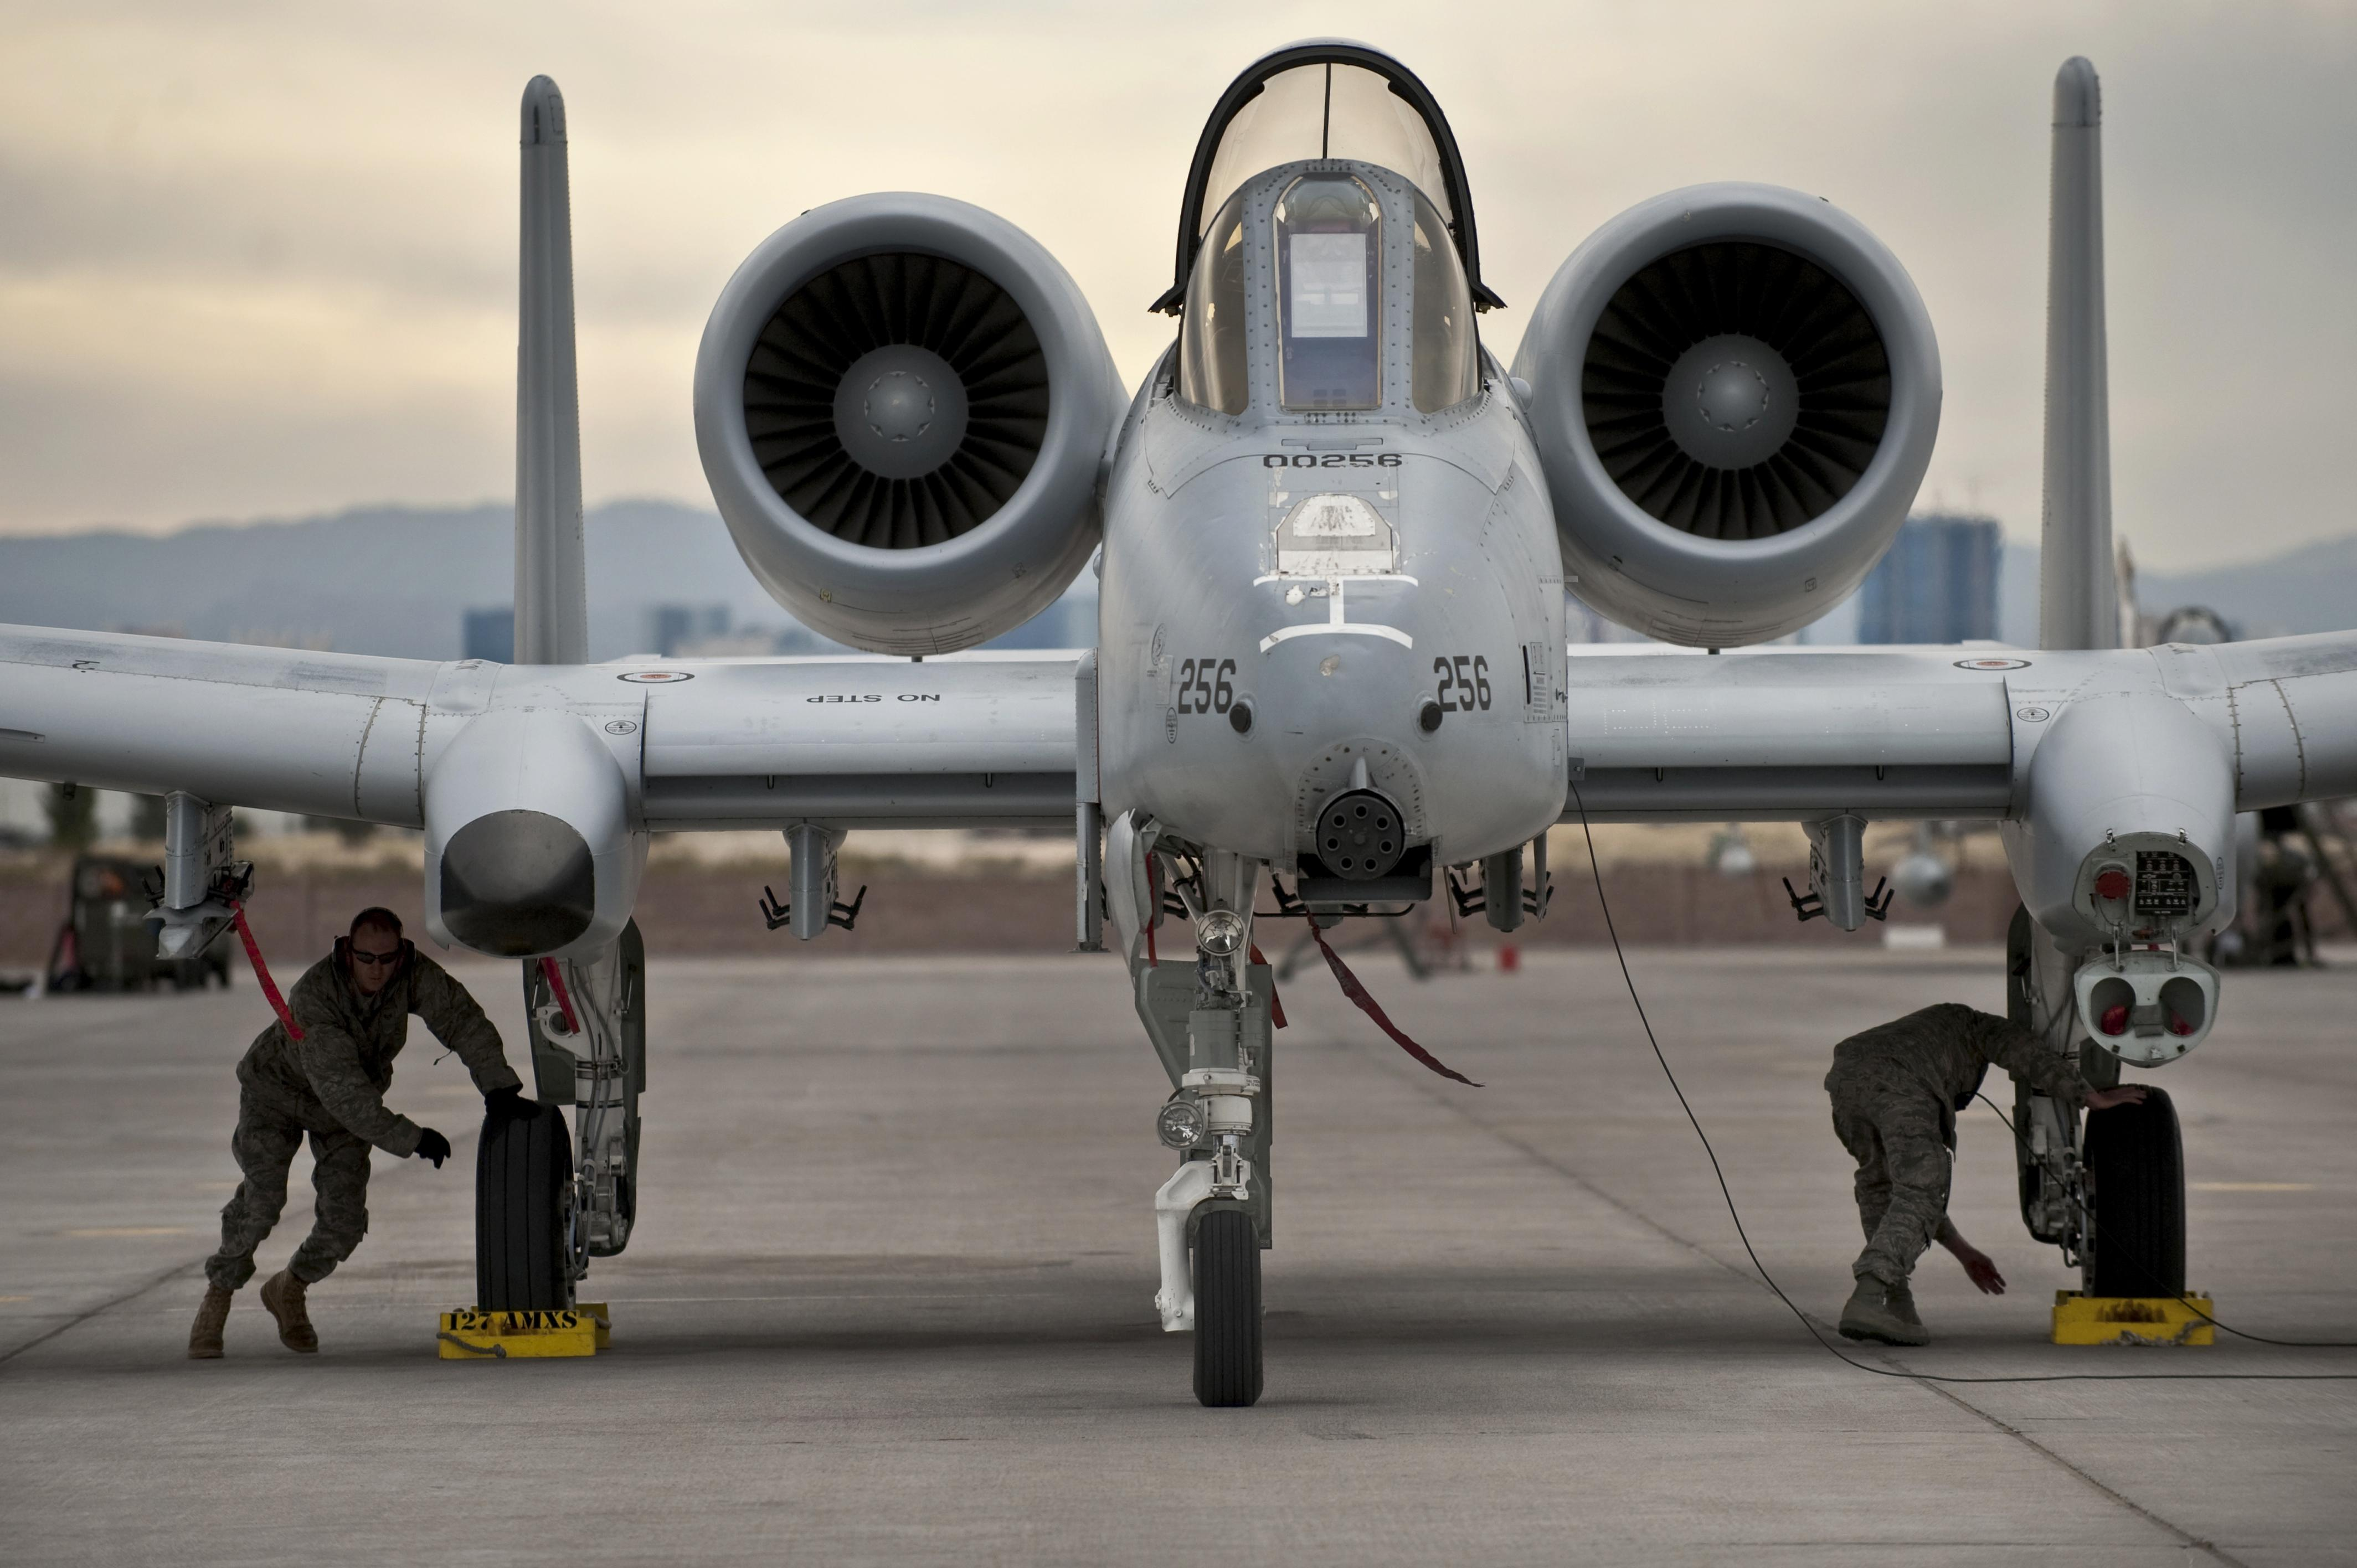 A-10 Thunderbolt aircraft being maintained